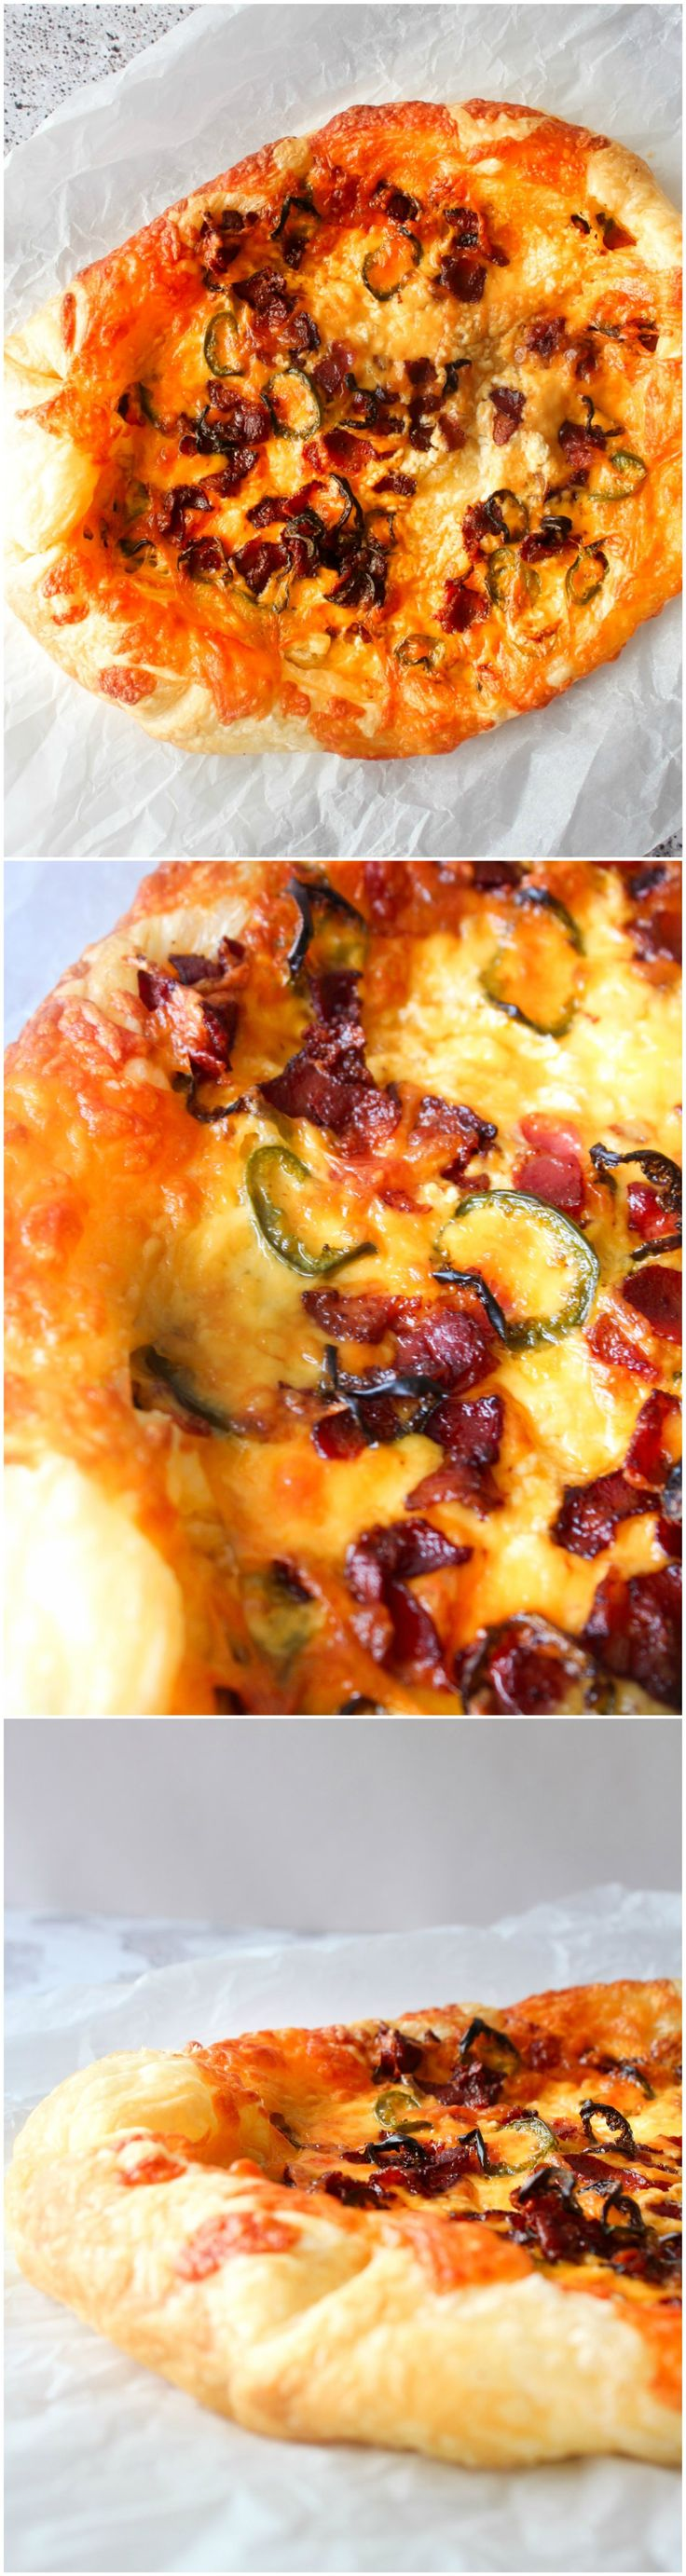 Jalapeño Popper Galette - Puff Pastry - Pastry Snack, Cheese Snack - Bacon Recipe - Jalapeños - Puff Pastry Recipe - Cream Cheese  Wonderful puff pastry snack with a jalapeño popper filling!